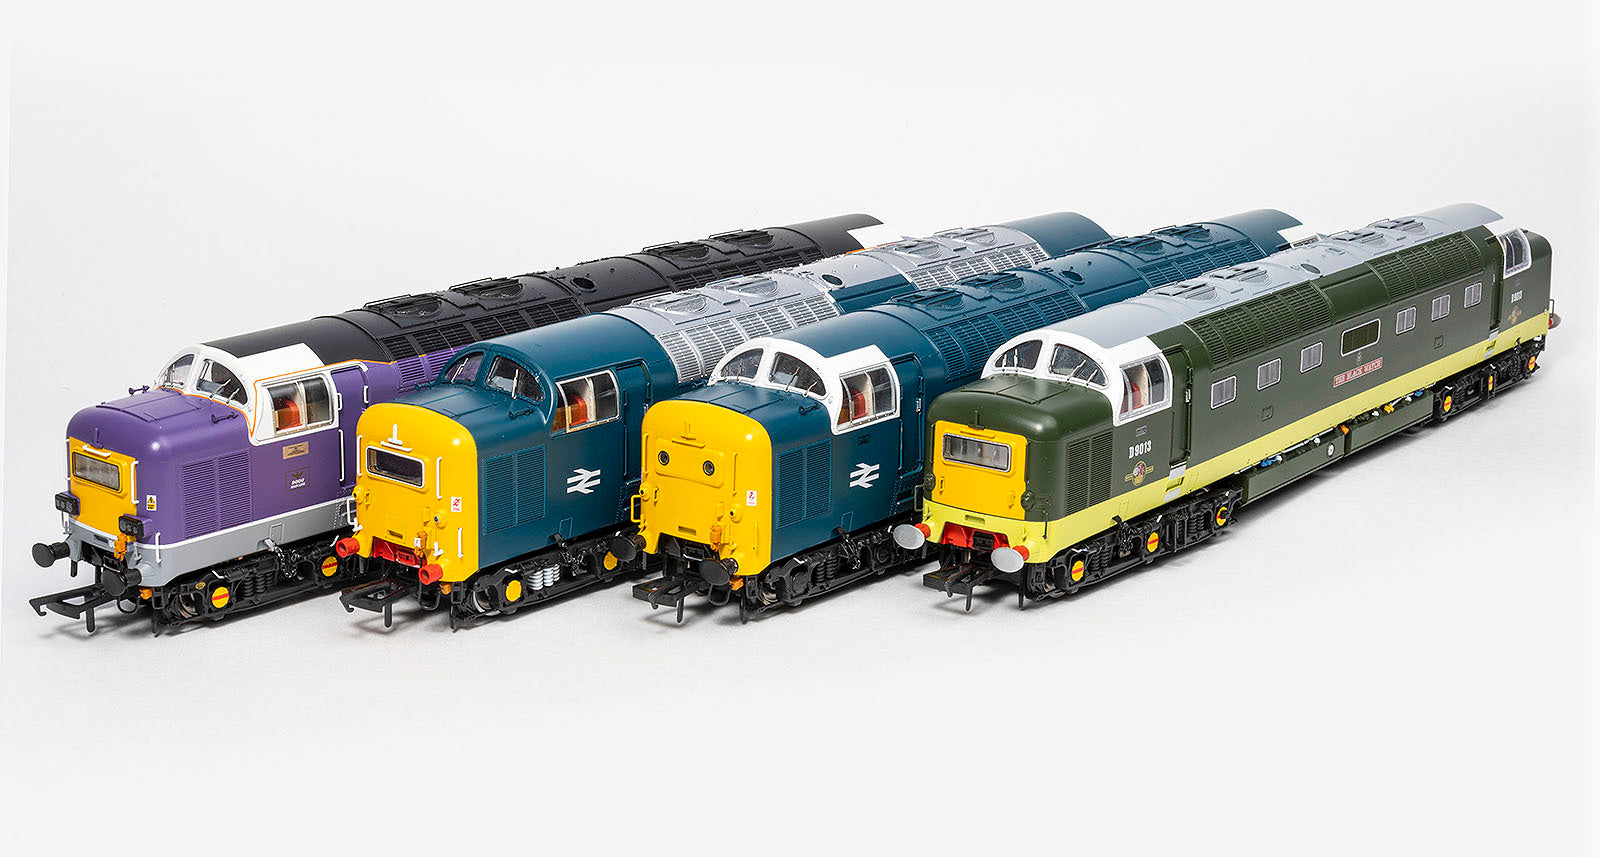 Decorated Deltic Update - February 2021